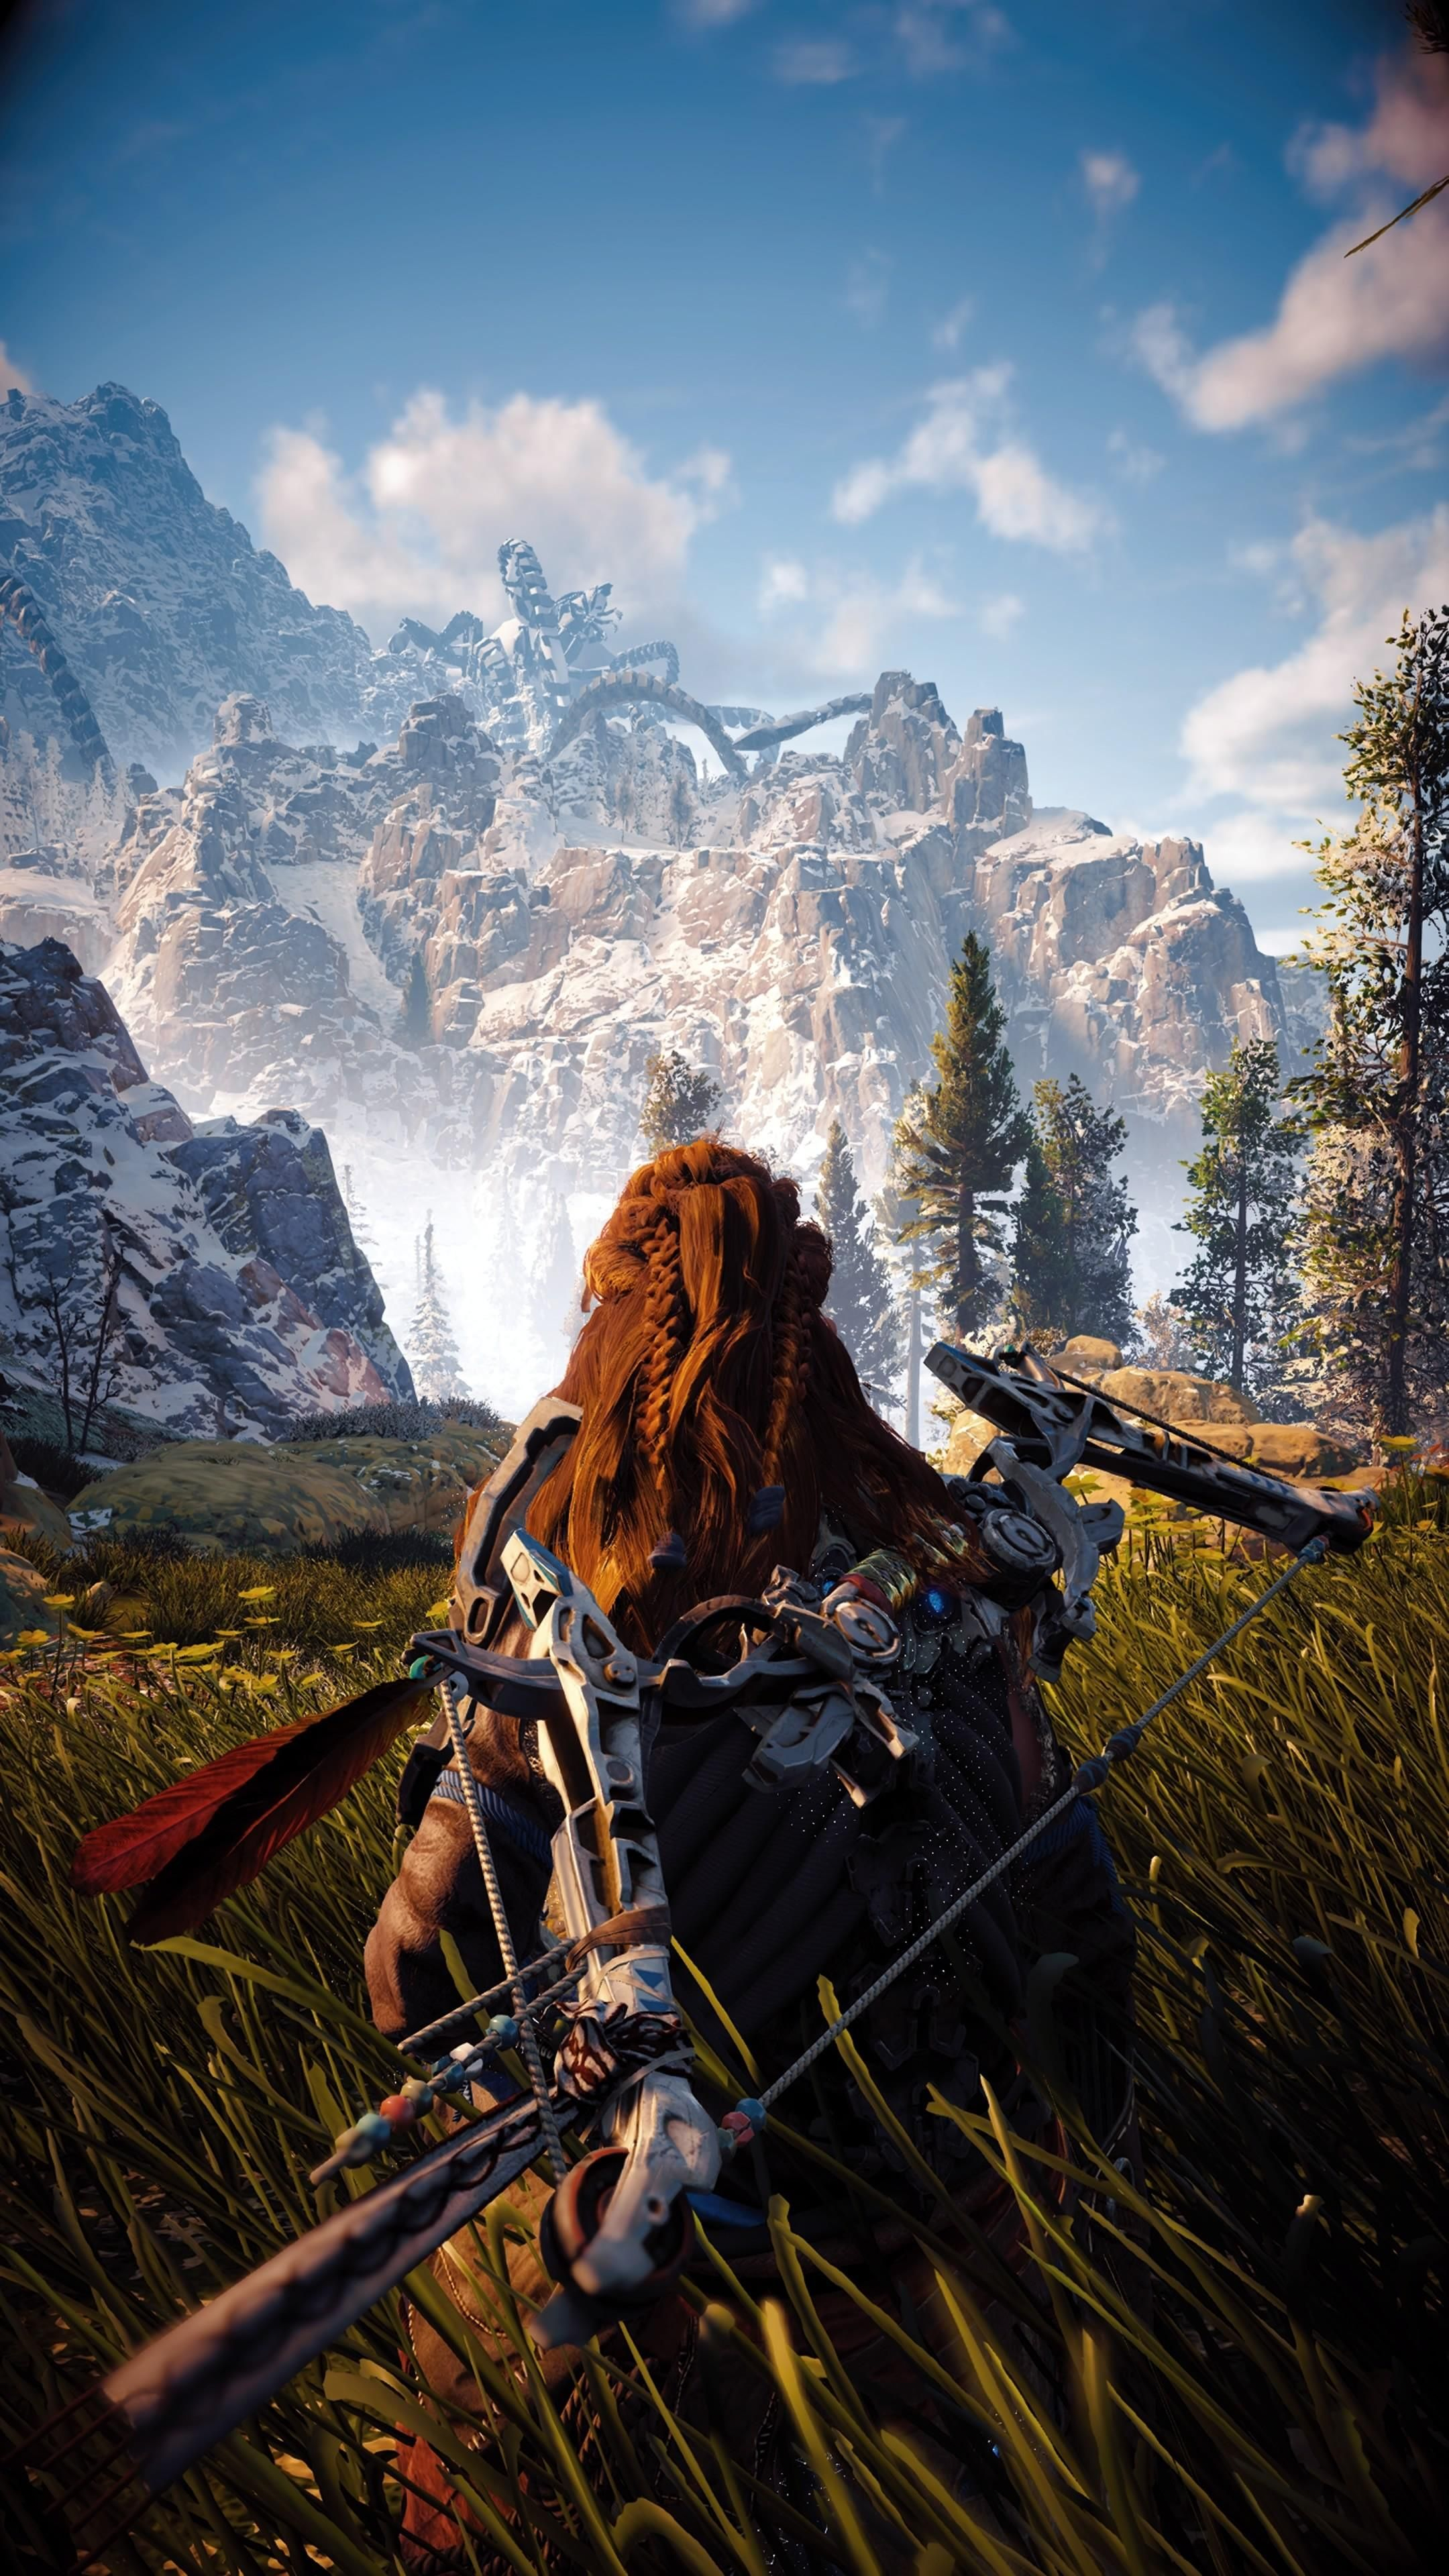 Horizon Zero Dawn Wallpaper Horizon Zero Dawn Wallpaper Horizon Zero Dawn Horizon Zero Dawn Aloy